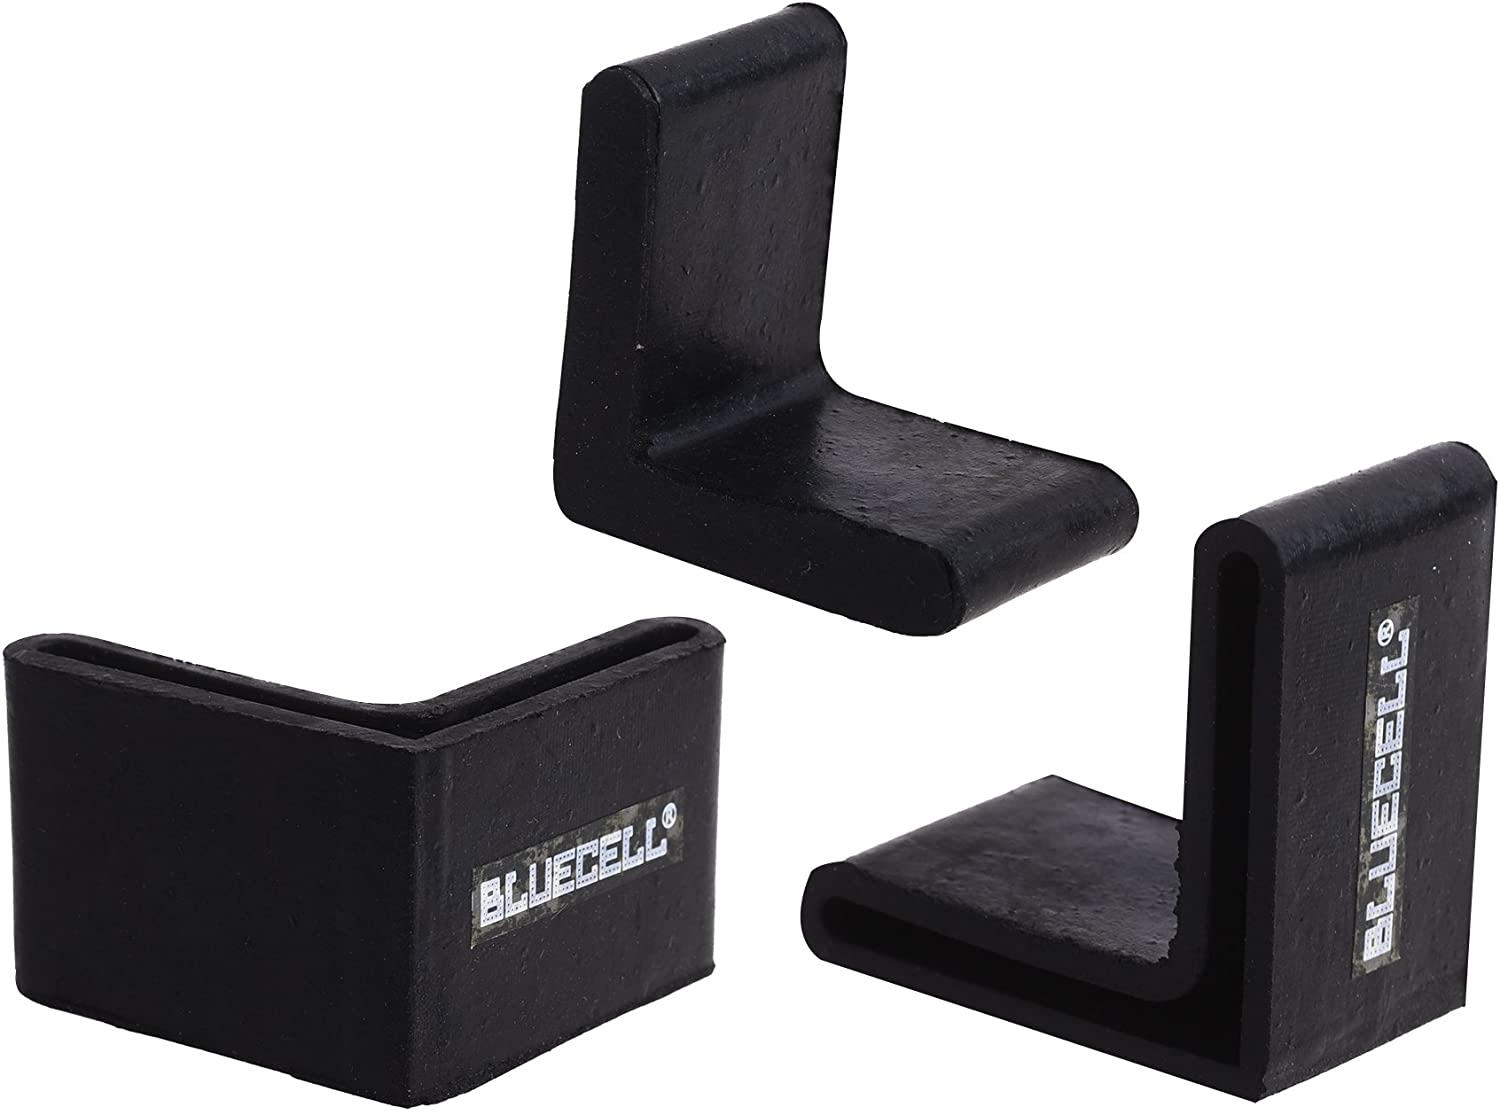 BLUECELL 10PCS Black Color L Shape Rubber Covers Furniture Angle Iron Foot Pads,38x38mm